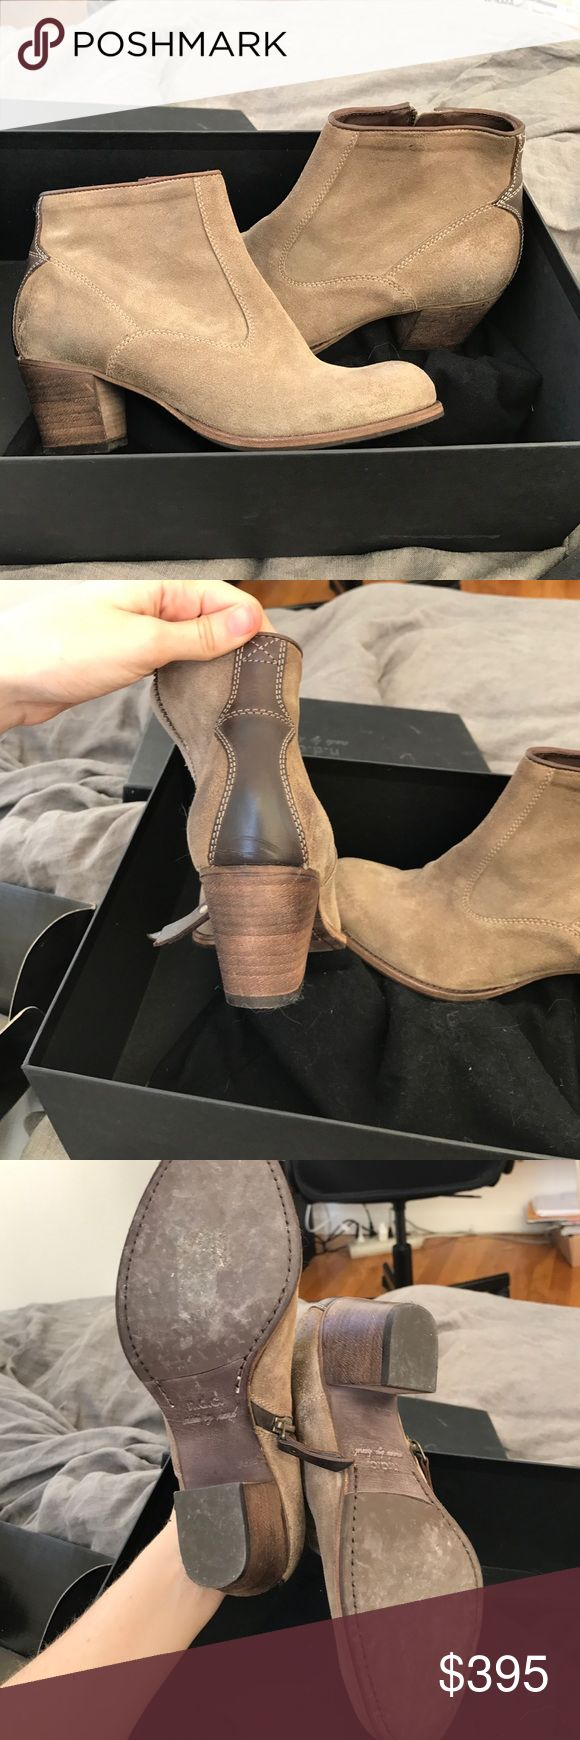 n.d.c. Made by hand Em R Softy ankle boots Worn one time at a wedding. I'm a straight 7 and they are a little tight in the toe box. Because leather stretches, if you were to wear them they would probably stretch out and be fine for a size 7. Dust bag is included. Please let me know if you would like box also shipped, they are more expensive to ship that way. n.d.c. Shoes Ankle Boots & Booties